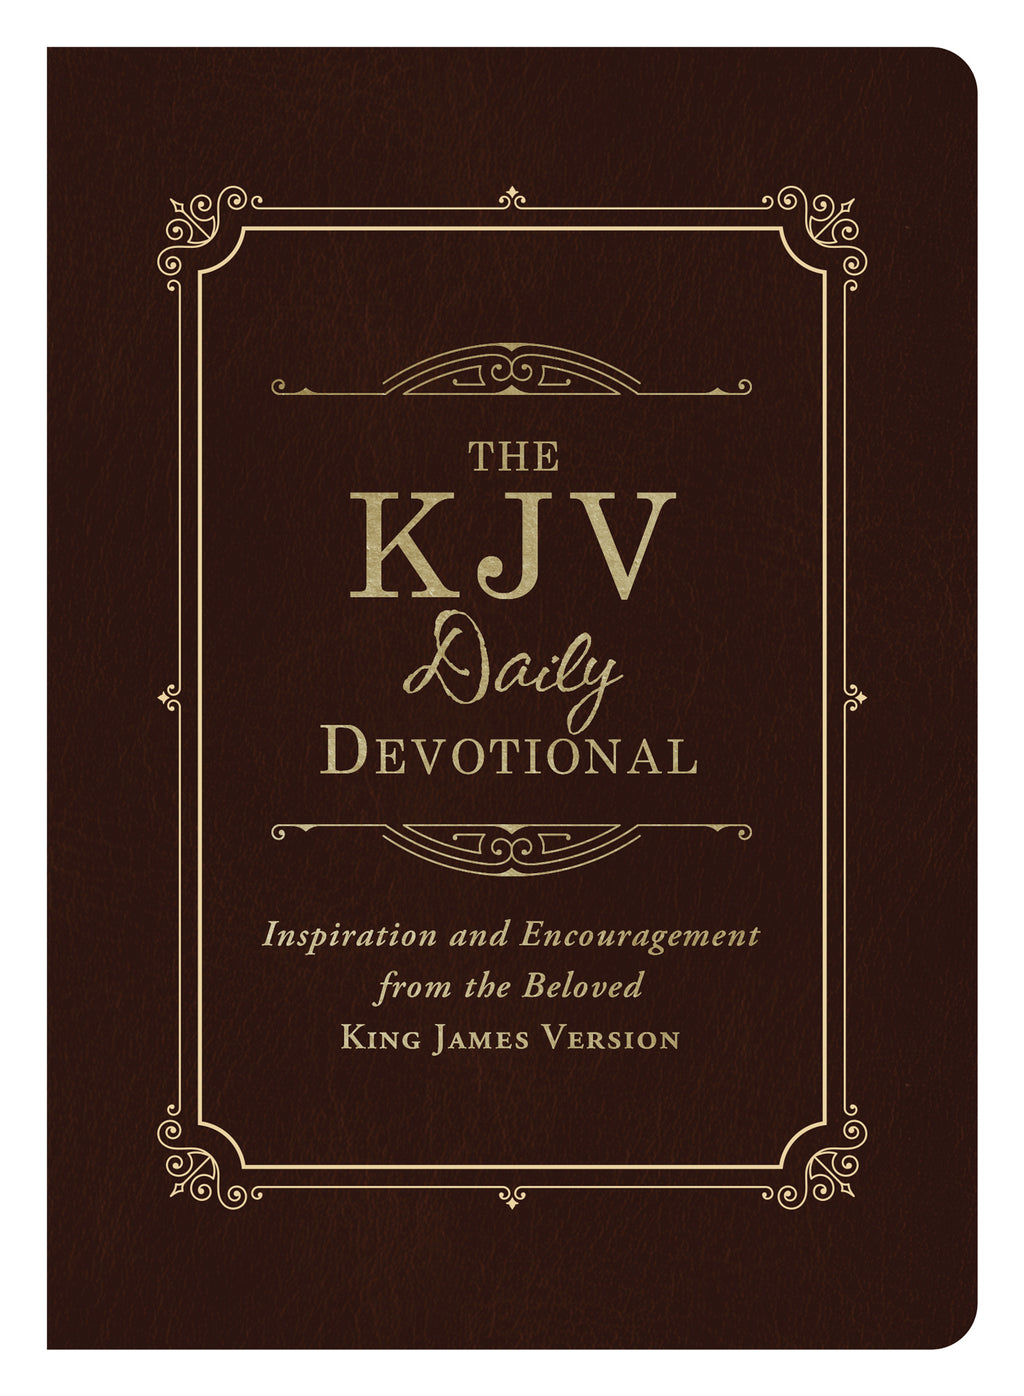 The KJV Daily Devotional-DiCarta